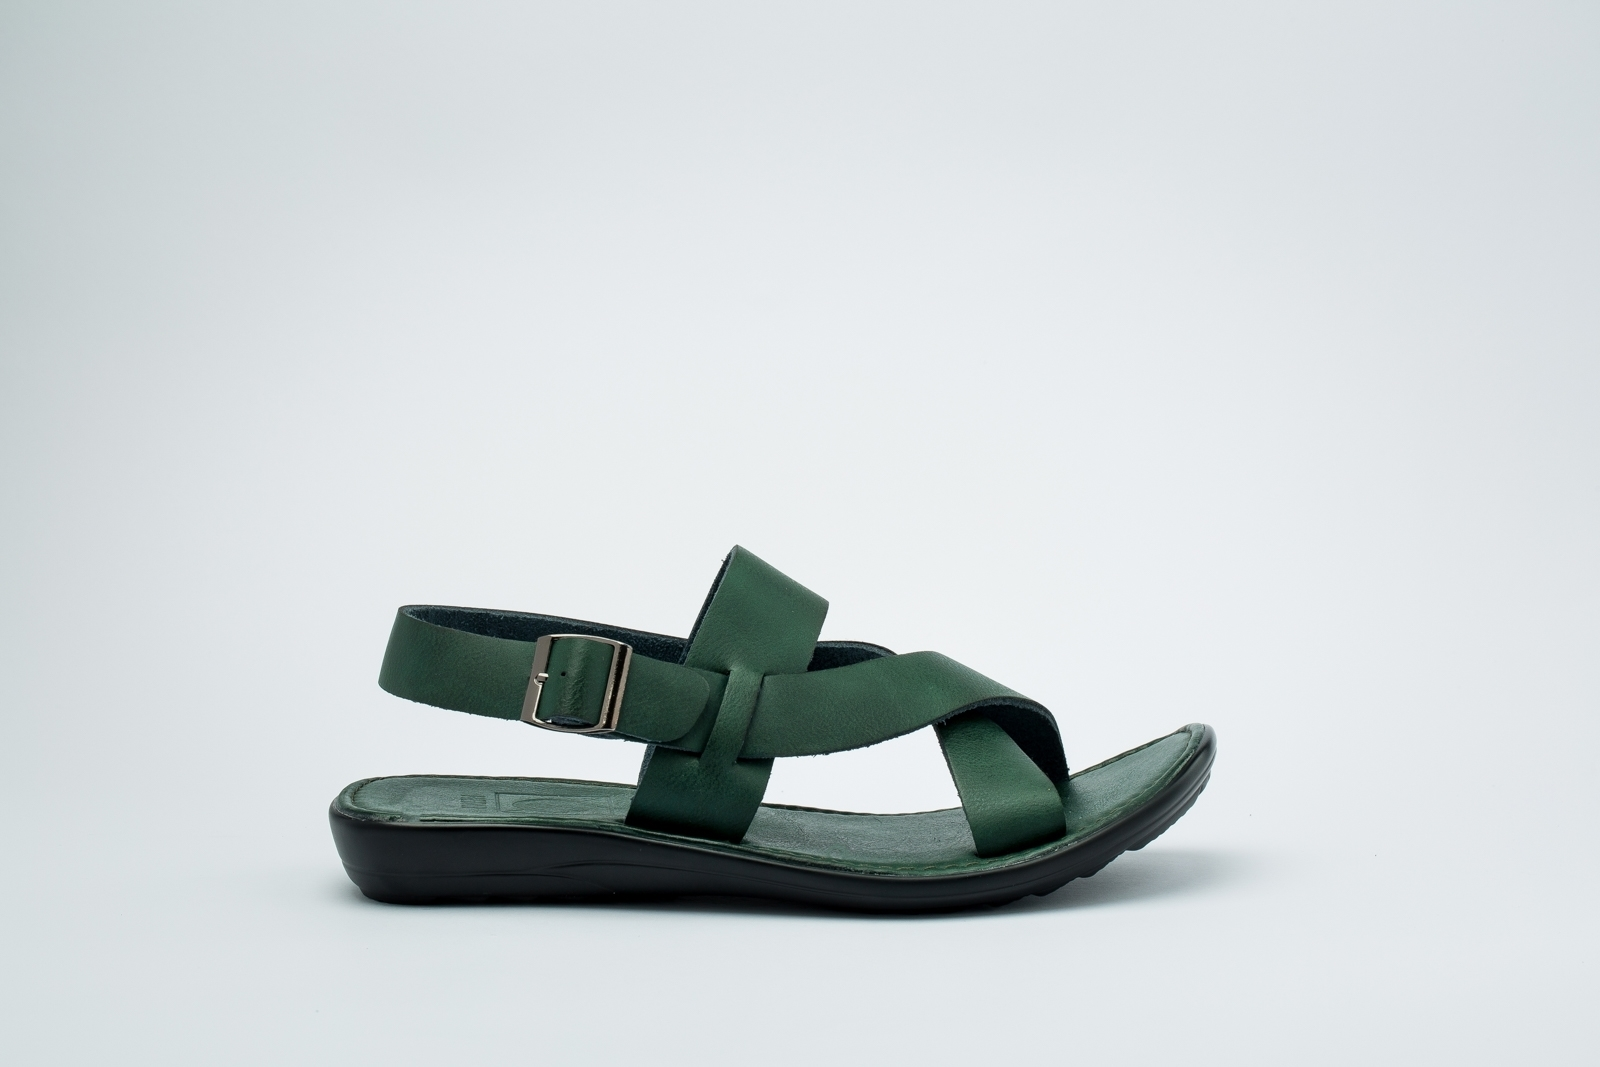 Picture of Green Sandals